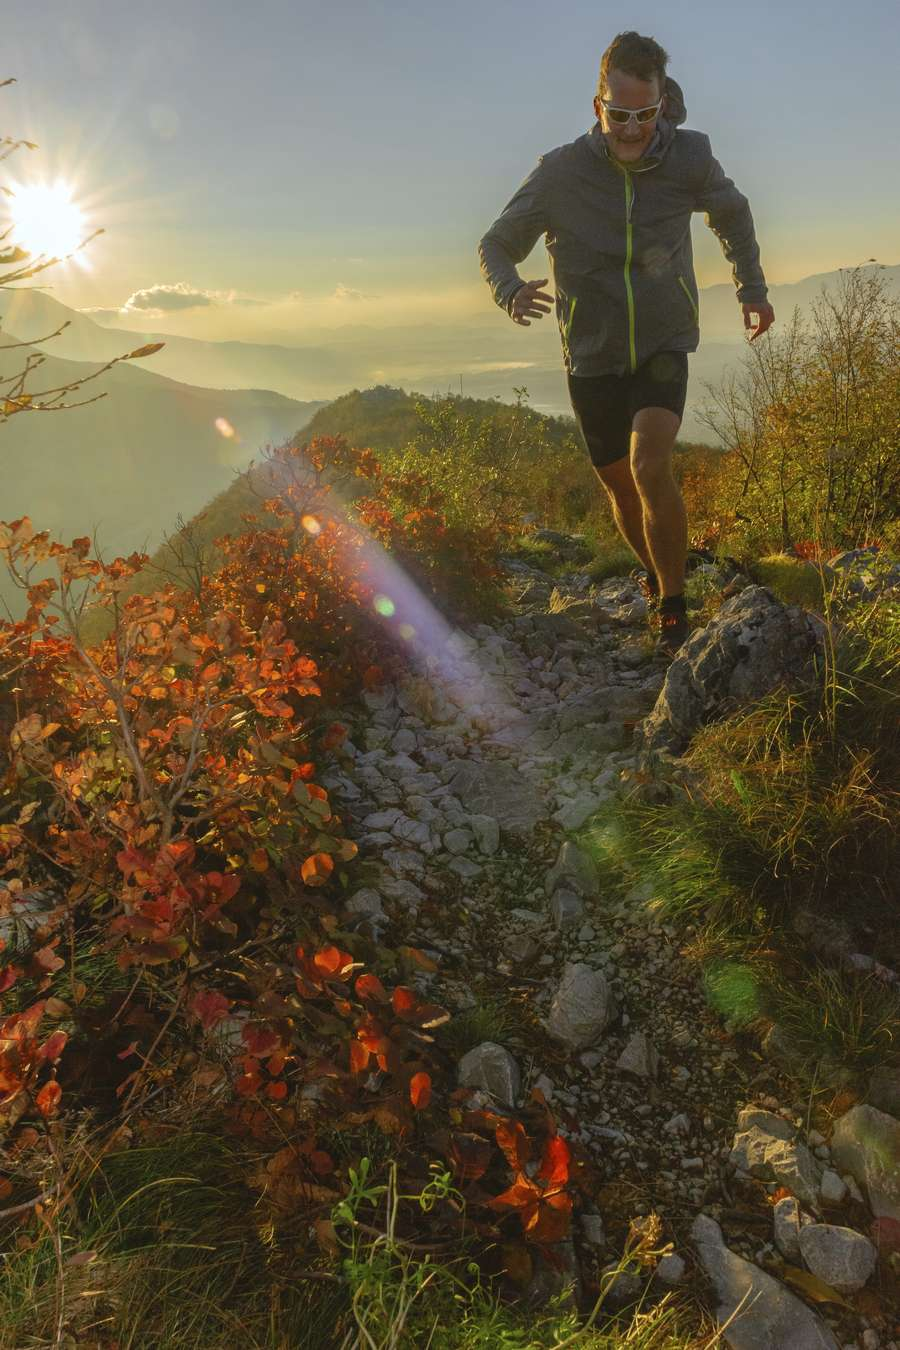 Young runner running  in the morning on the mountain,red smokebush,lens flare, Sabotin, Nova Gorica,Primorska, Slovenia, High ISO,Nikon D3x